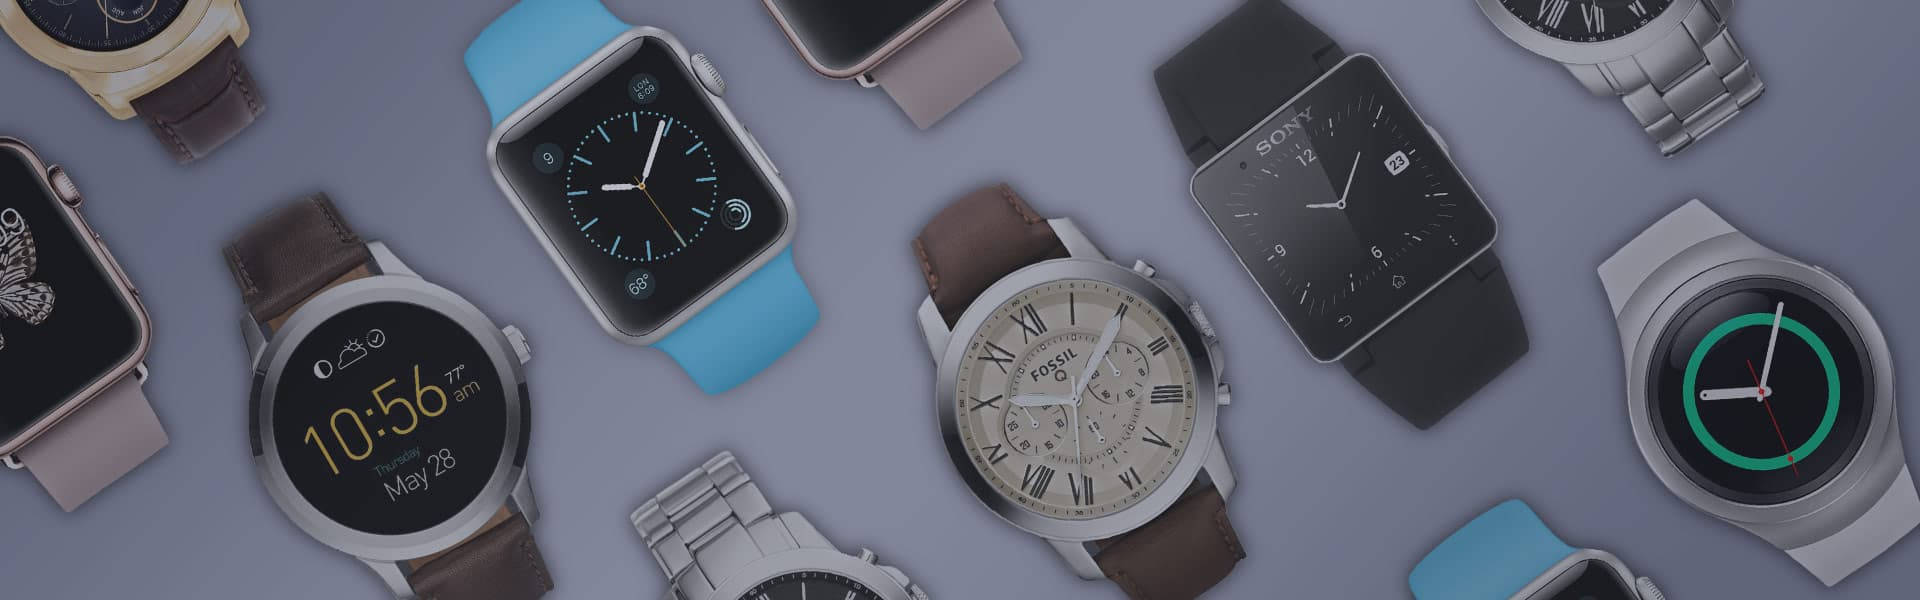 Best Smartwatch Under 50 USD 2019 – Buyer's Guide and Smartwatch Reviews